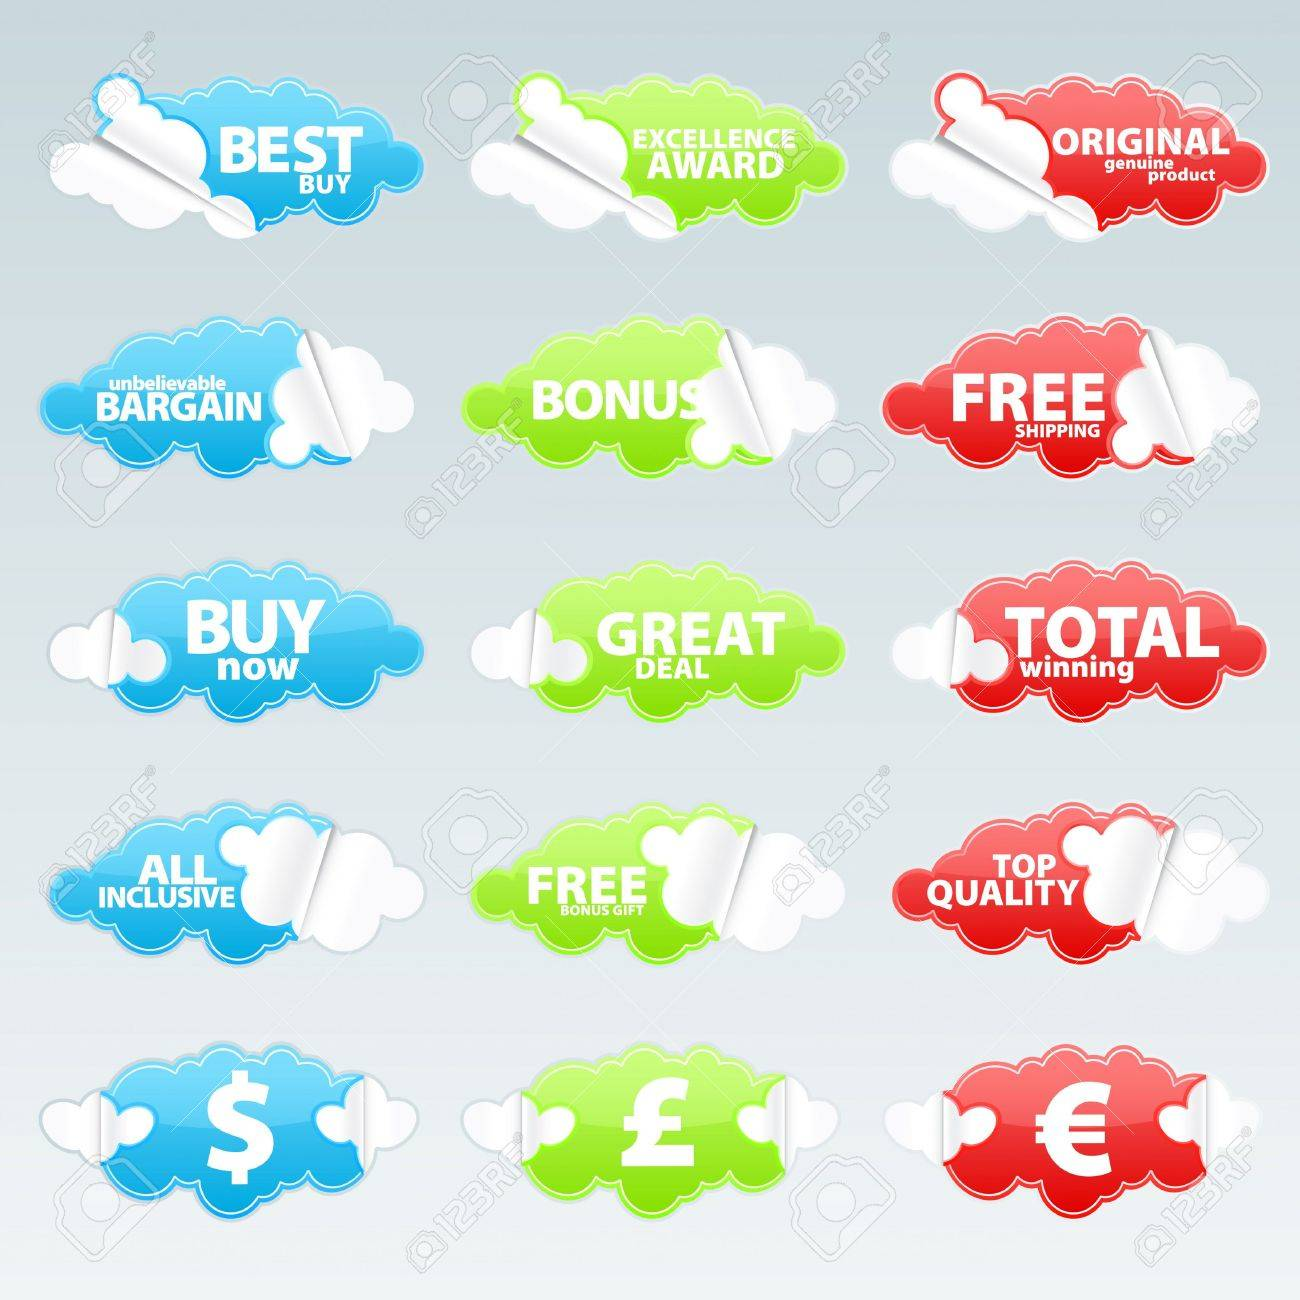 Vector illustration of fifteen cloudy peeling effect business retail stickers with sale theme slogans. - 3471197